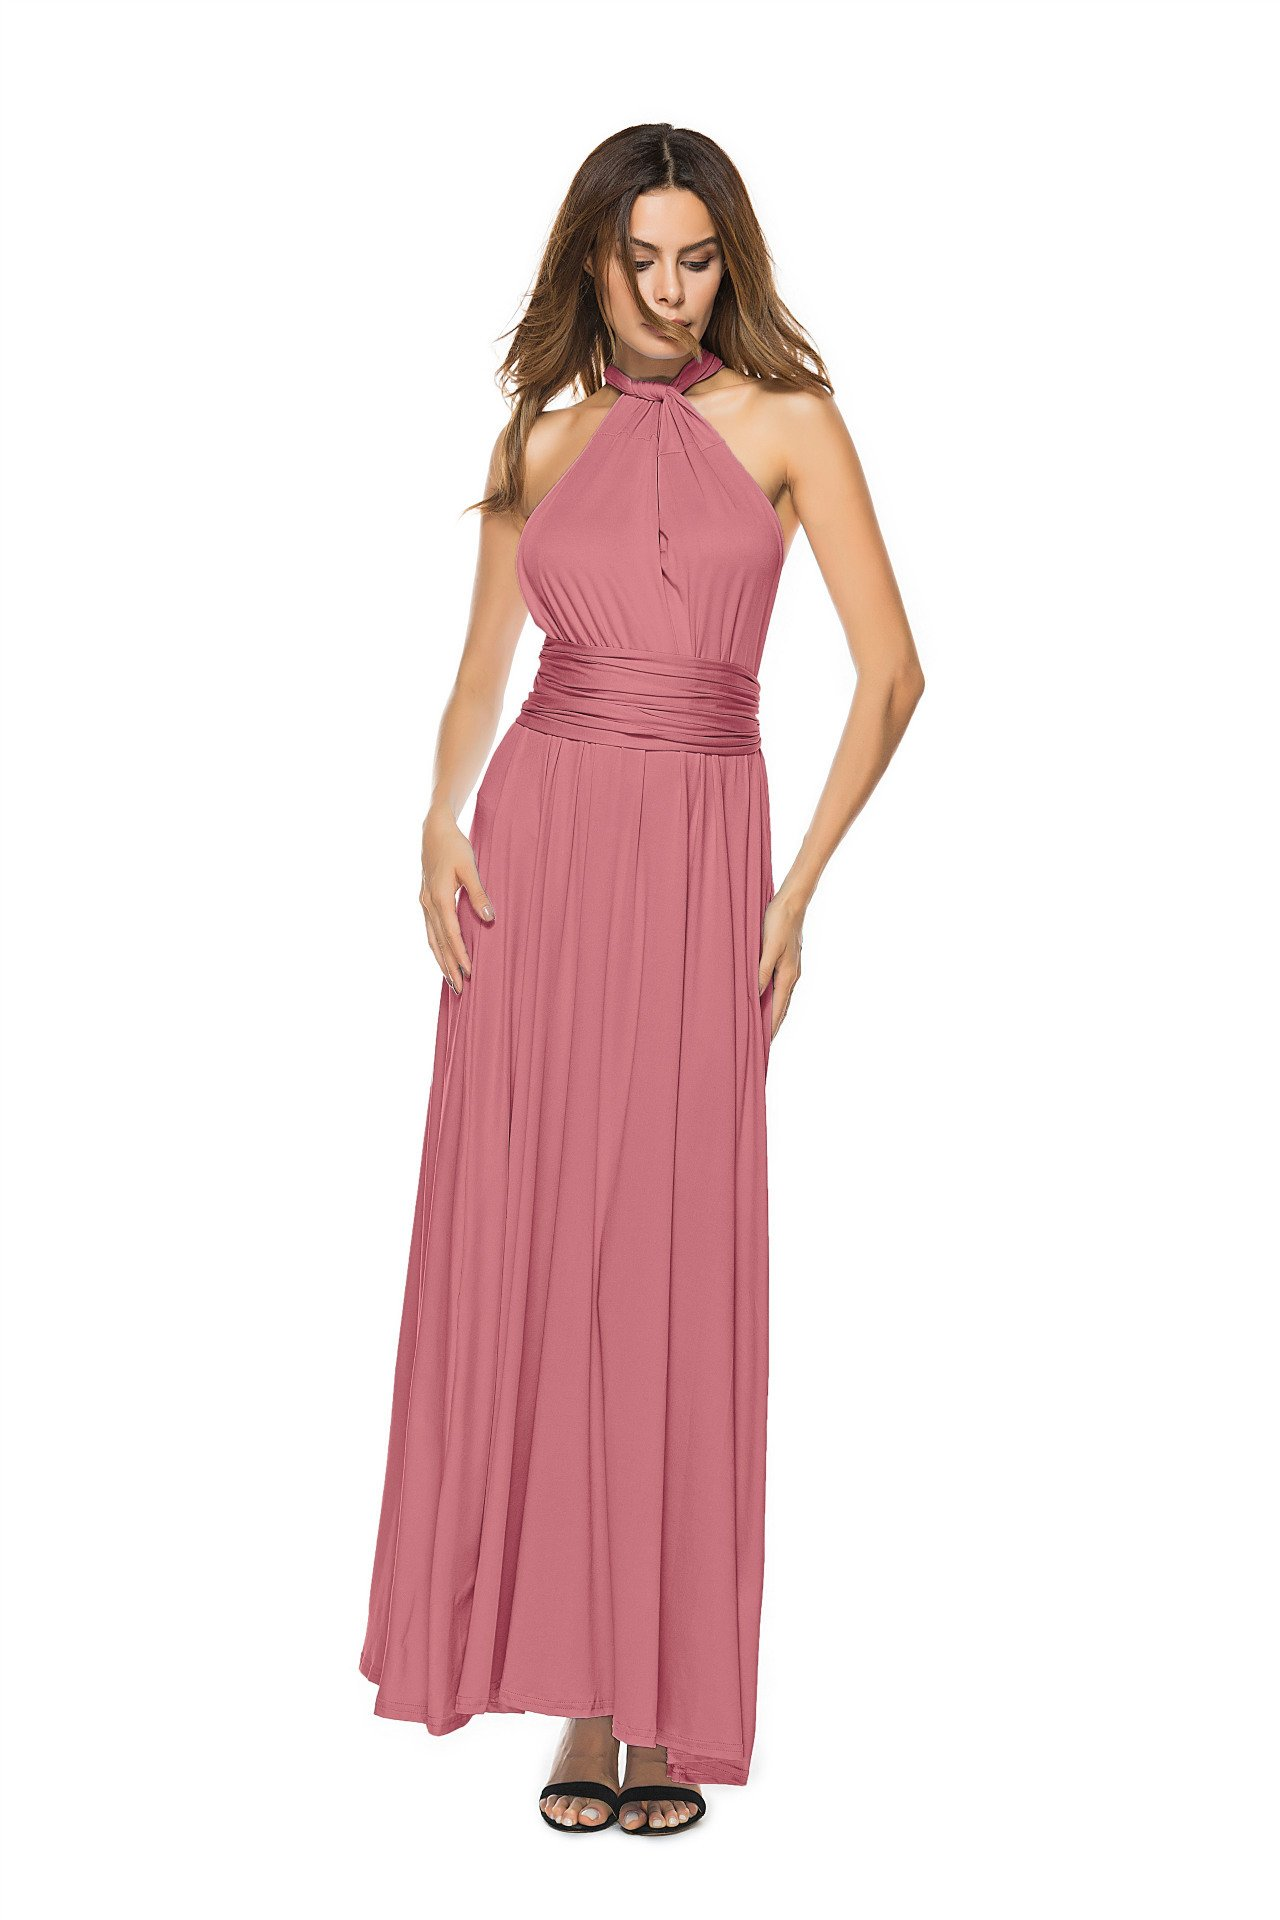 17bcfebfe845 ... Women's Convertible Multi Way Wrap Maxi Dress Long Party Grecian Dresses.  ; 